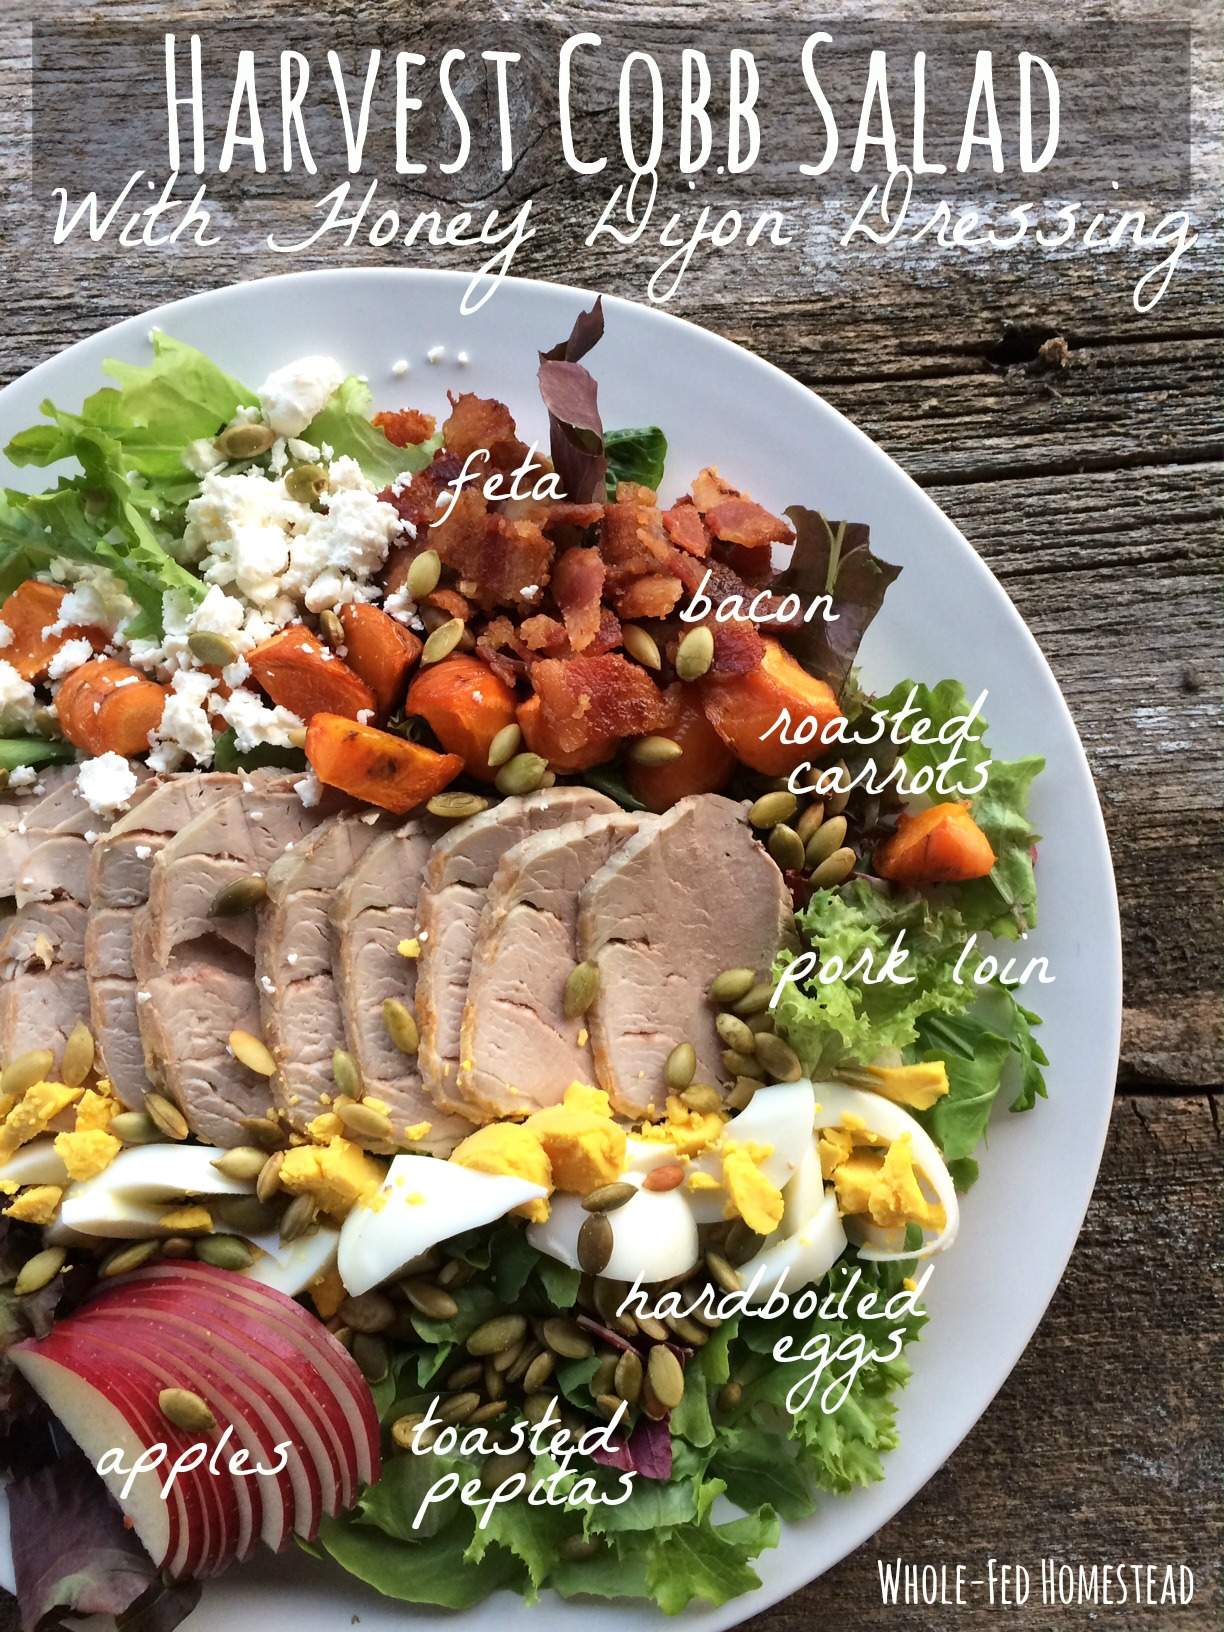 Harvest Cobb Salad with Honey Dijon Dressing | Whole-Fed Homestead | Paleo - Gluten-Free - Holidays - Company - Grain-Free - Healthy